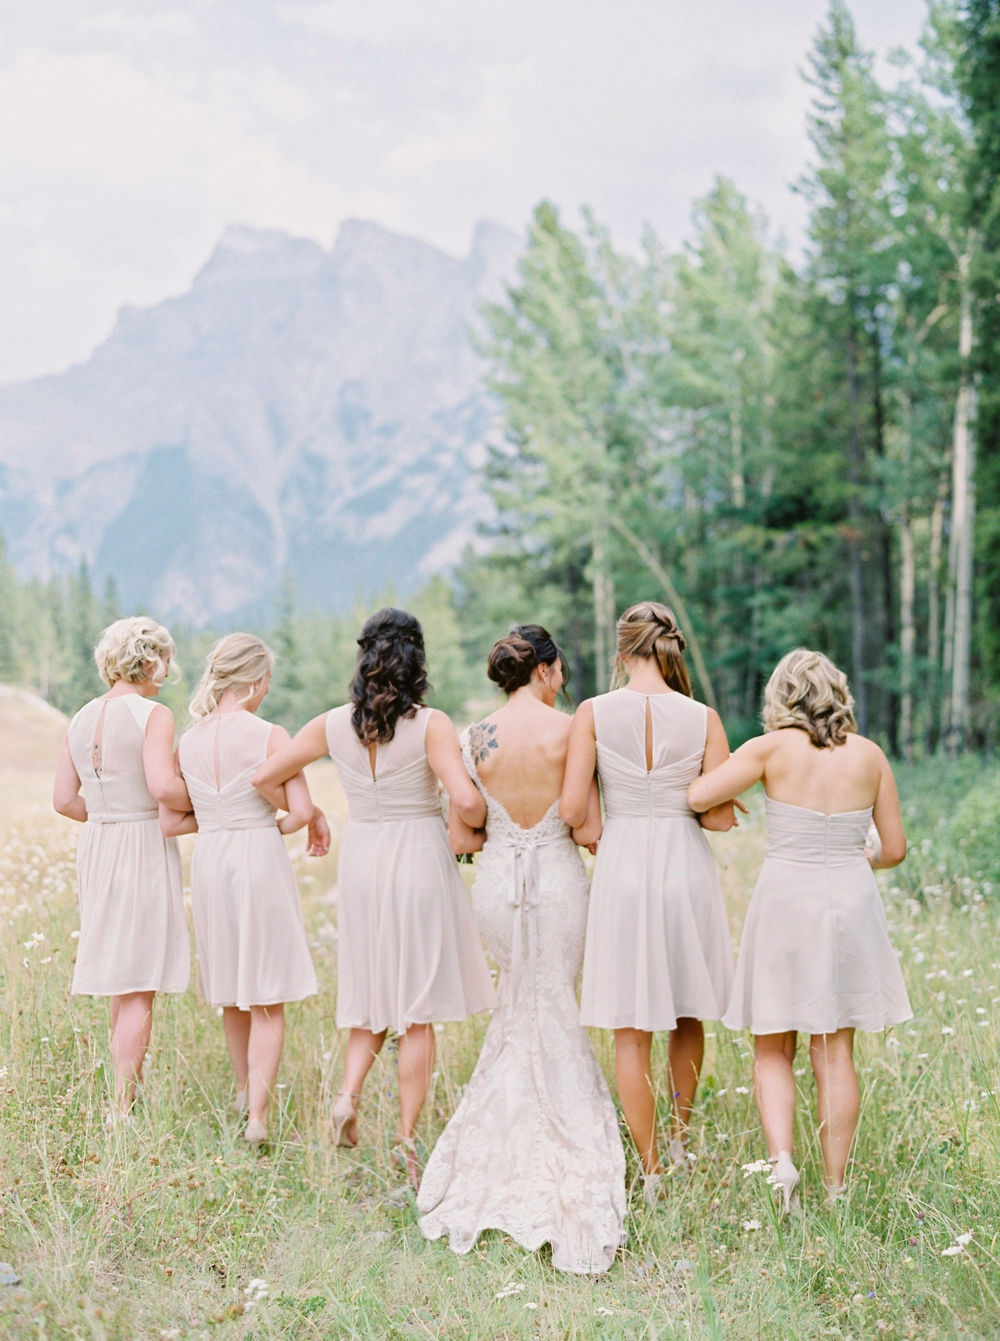 nude brides maids dresses | Banff springs wedding photographers | fairmont banff rocky mountain wedding | Justine Milton fine art film Photography